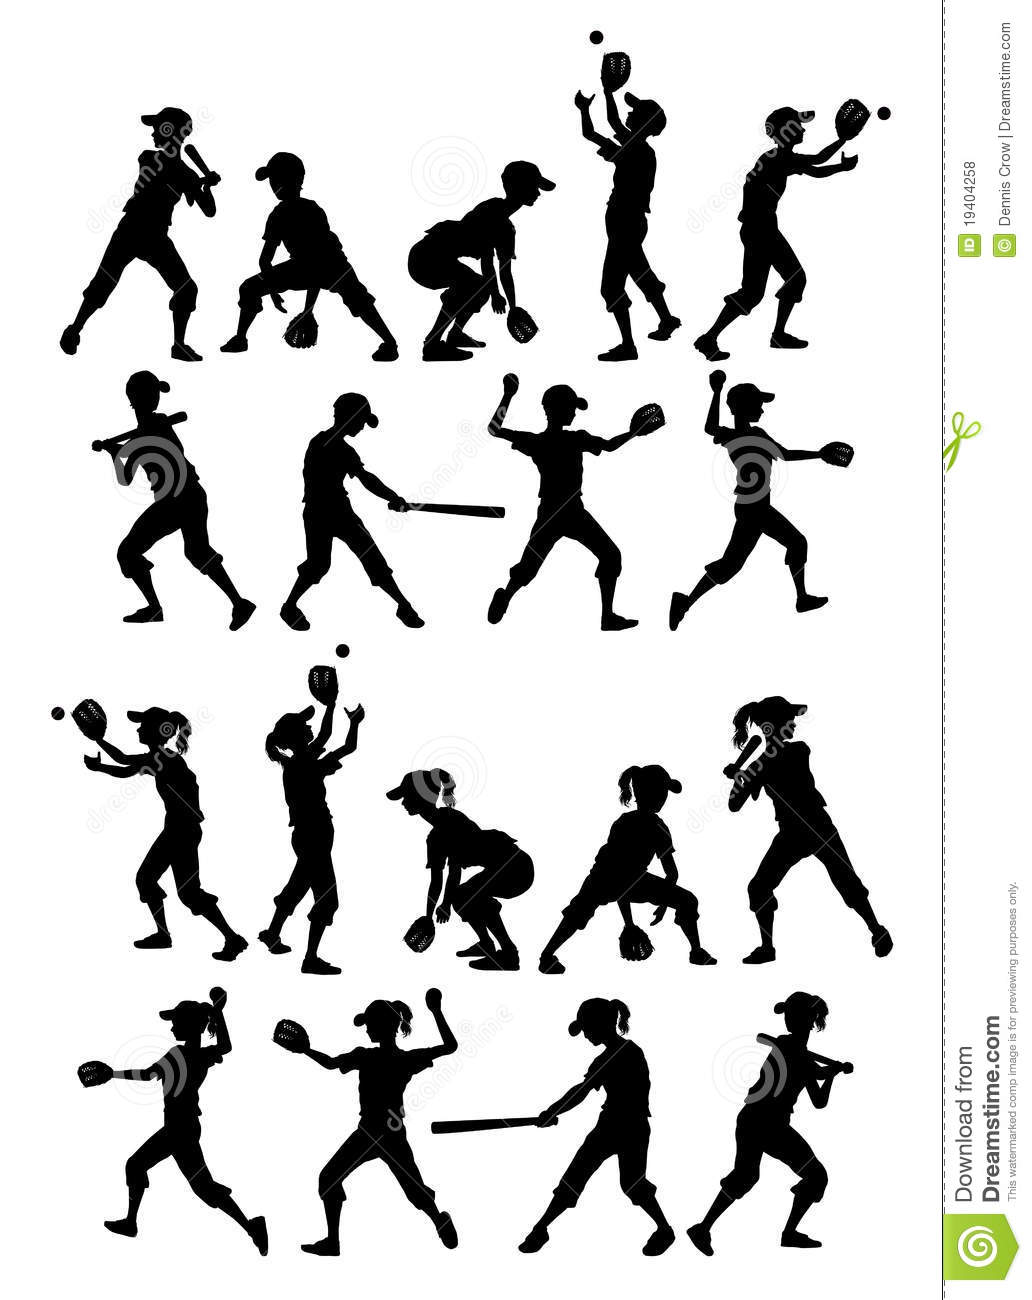 Baseball Softball Silhouettes Kids Boys And Girls Royalty